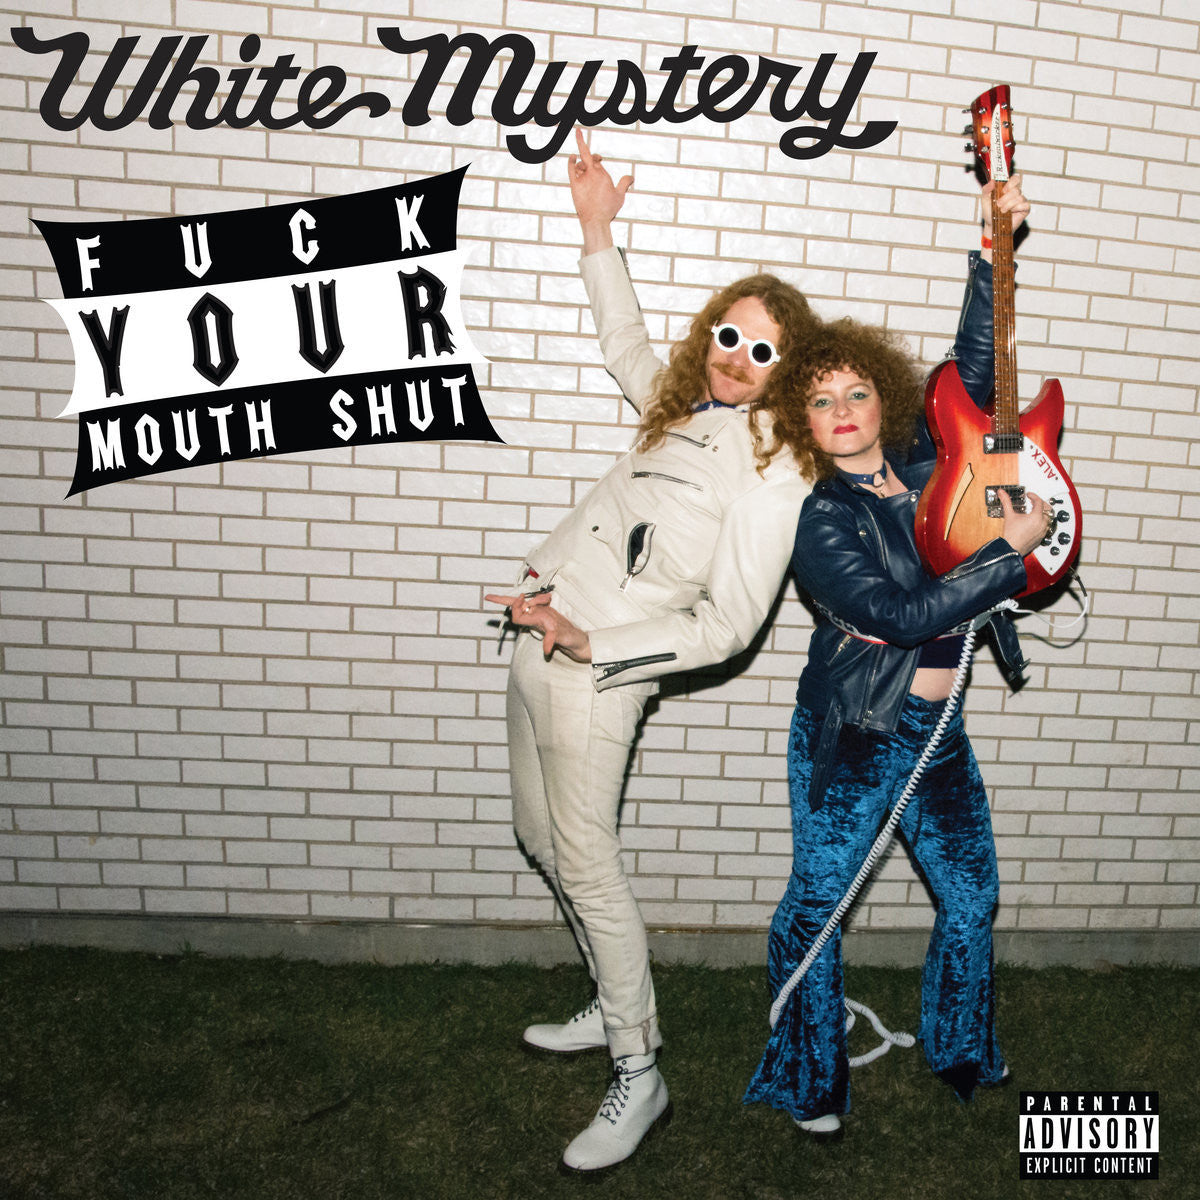 White Mystery ‎– Fuck Your Mouth Shut - New Vinyl Record 2017 White Mystery Pressing on Assorted Colors - Chicago, IL Garage Rock / Contemporary Punk